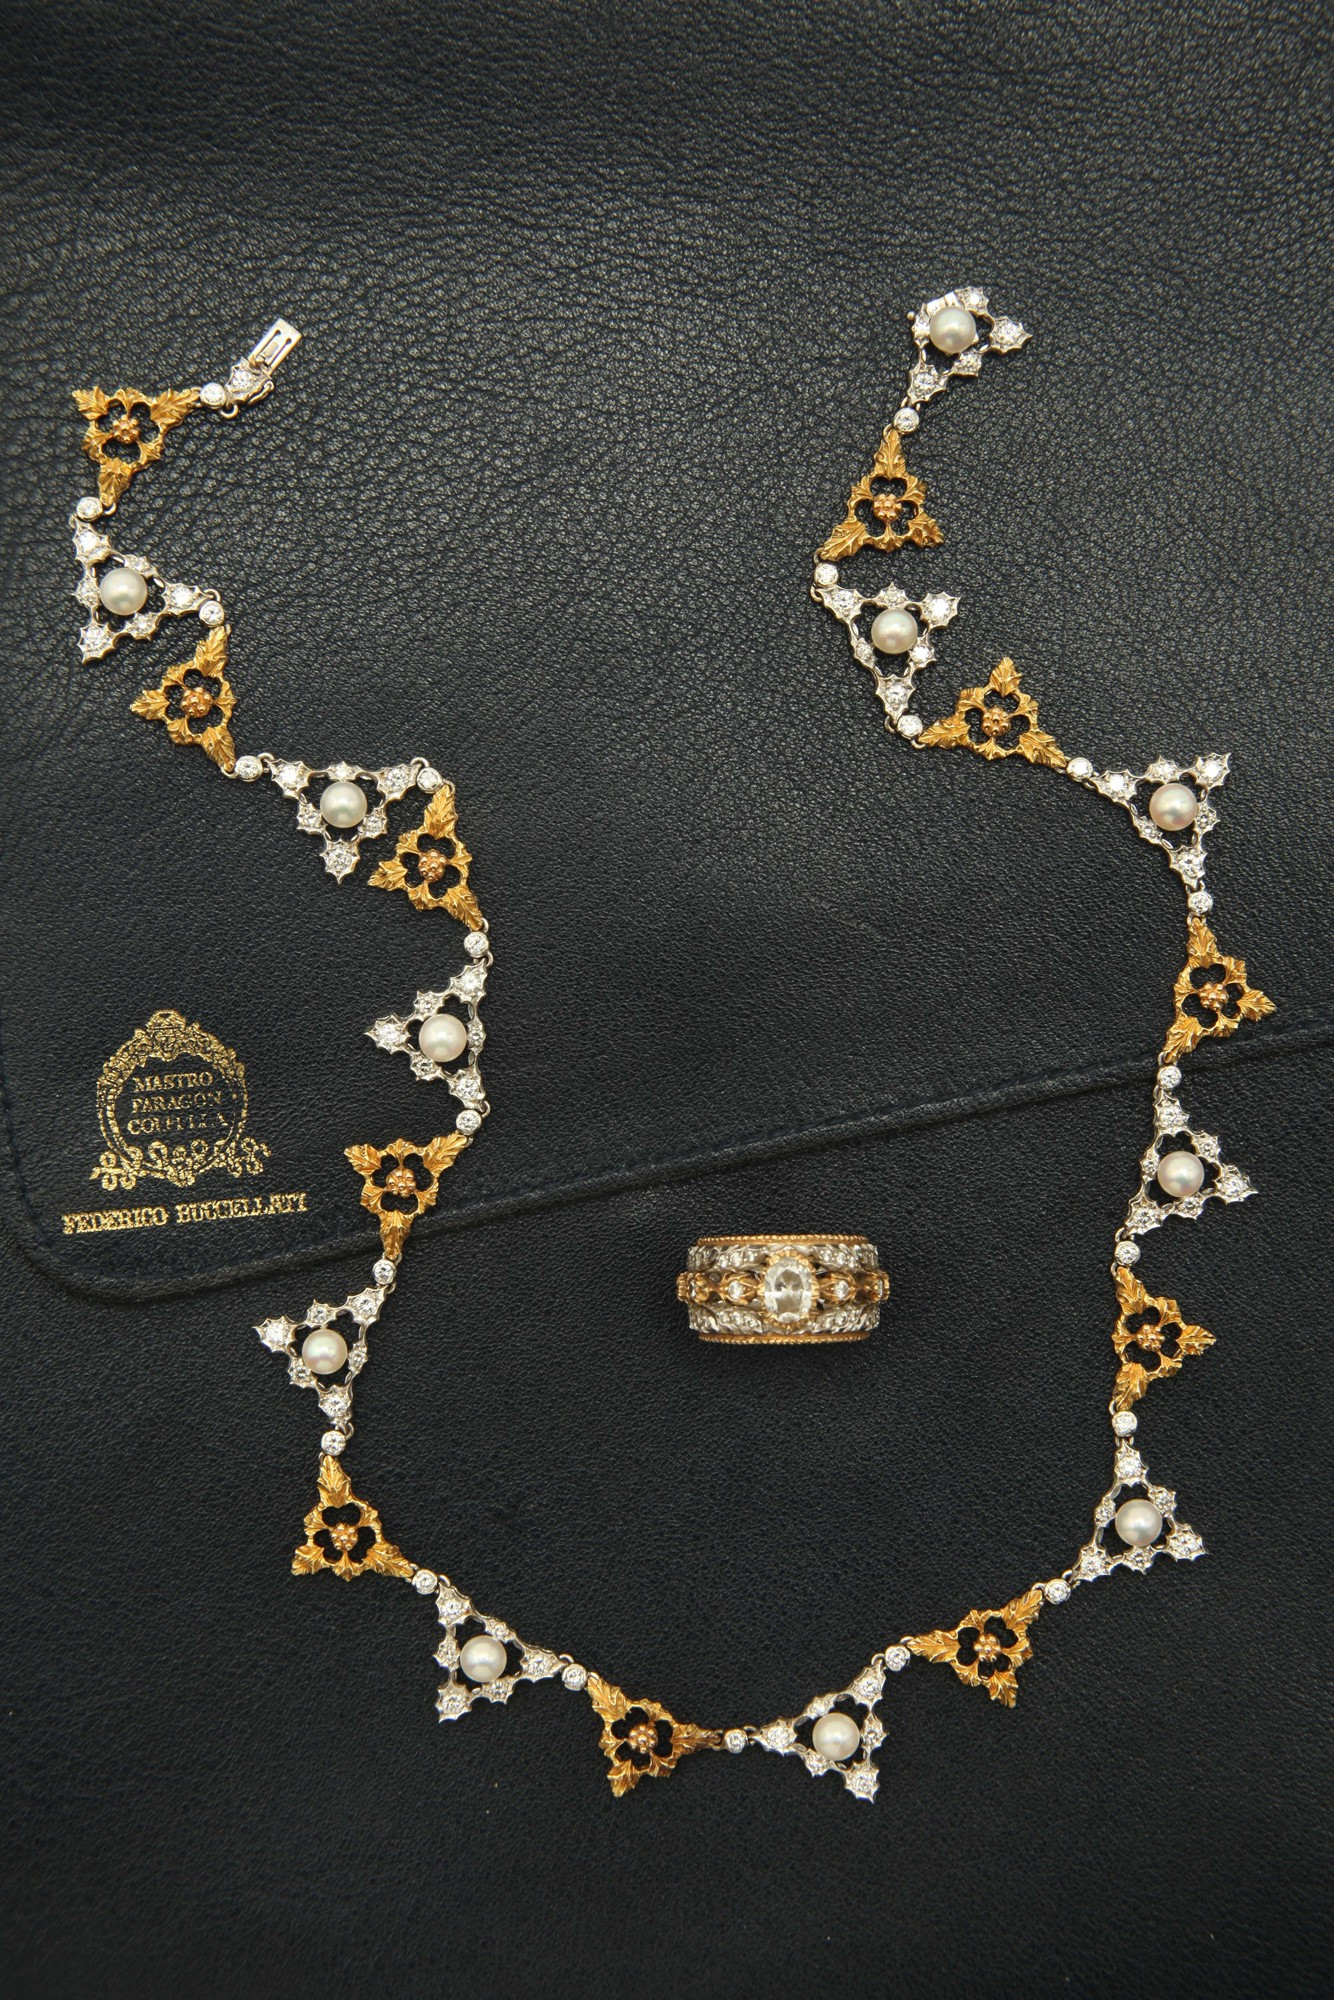 Buccellati. A diamond, pearl and gold necklace and ring